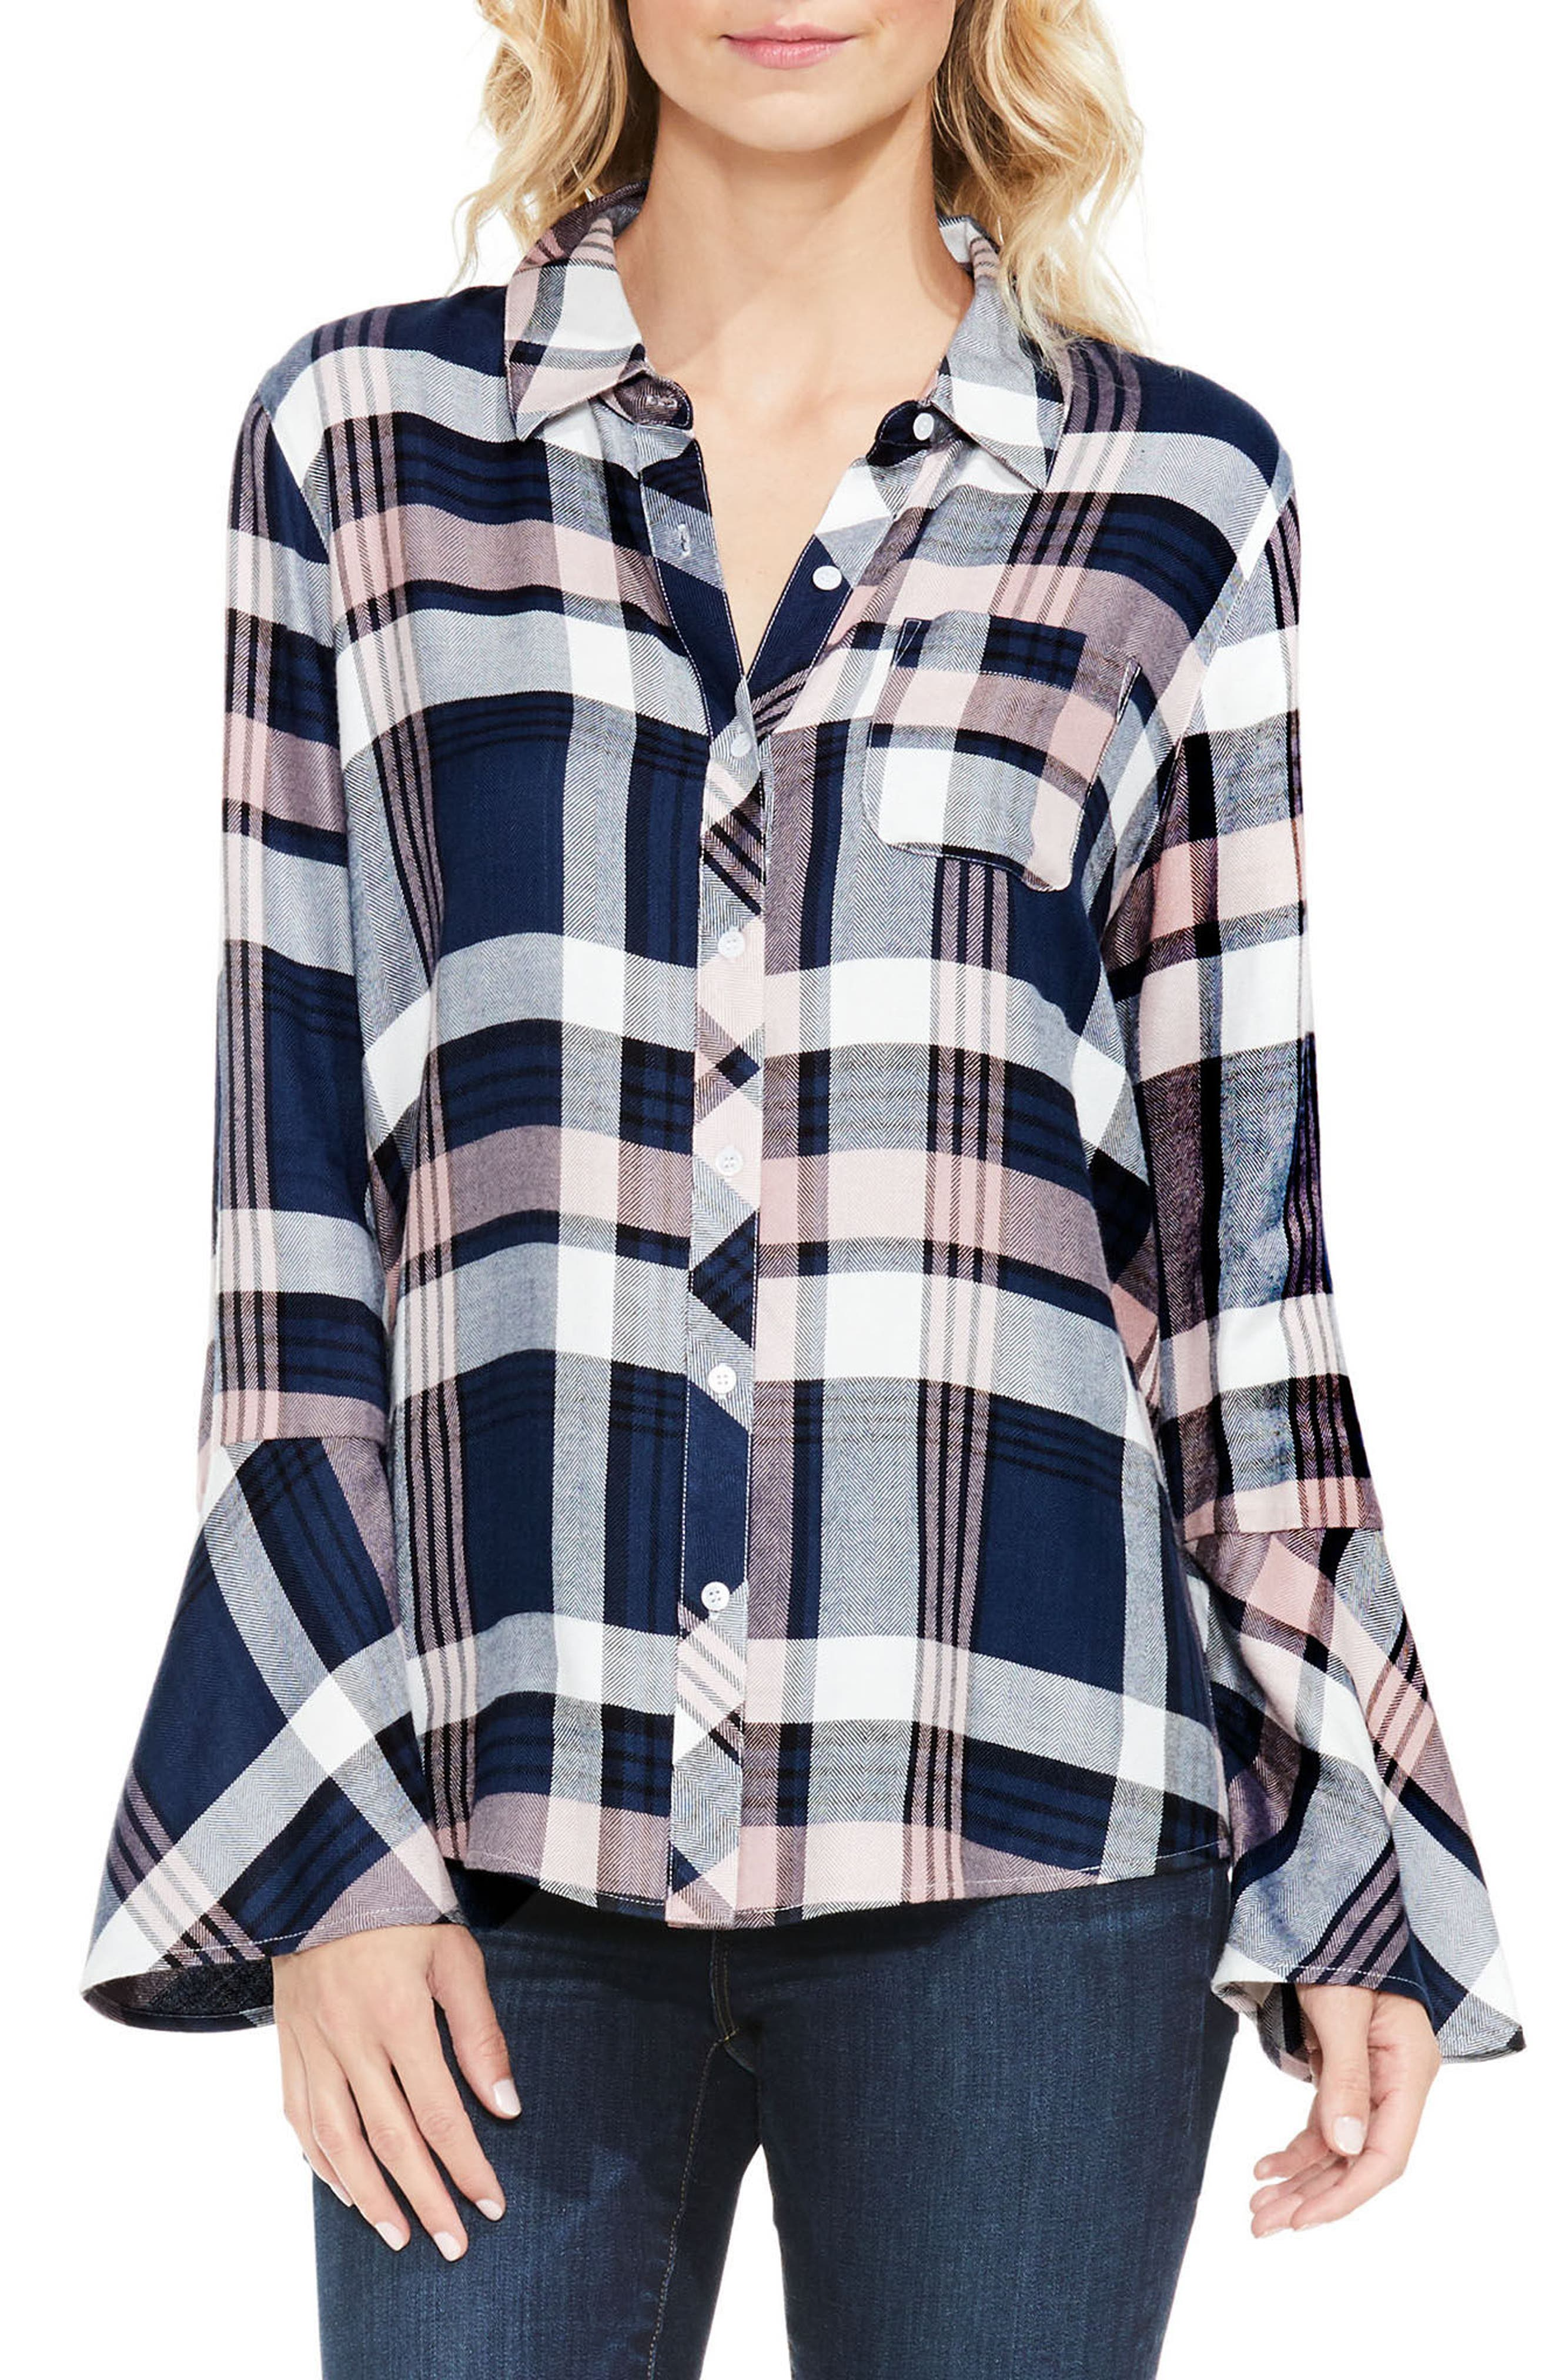 Main Image - Two by Vince Camuto Plaid Bell Sleeve Shirt